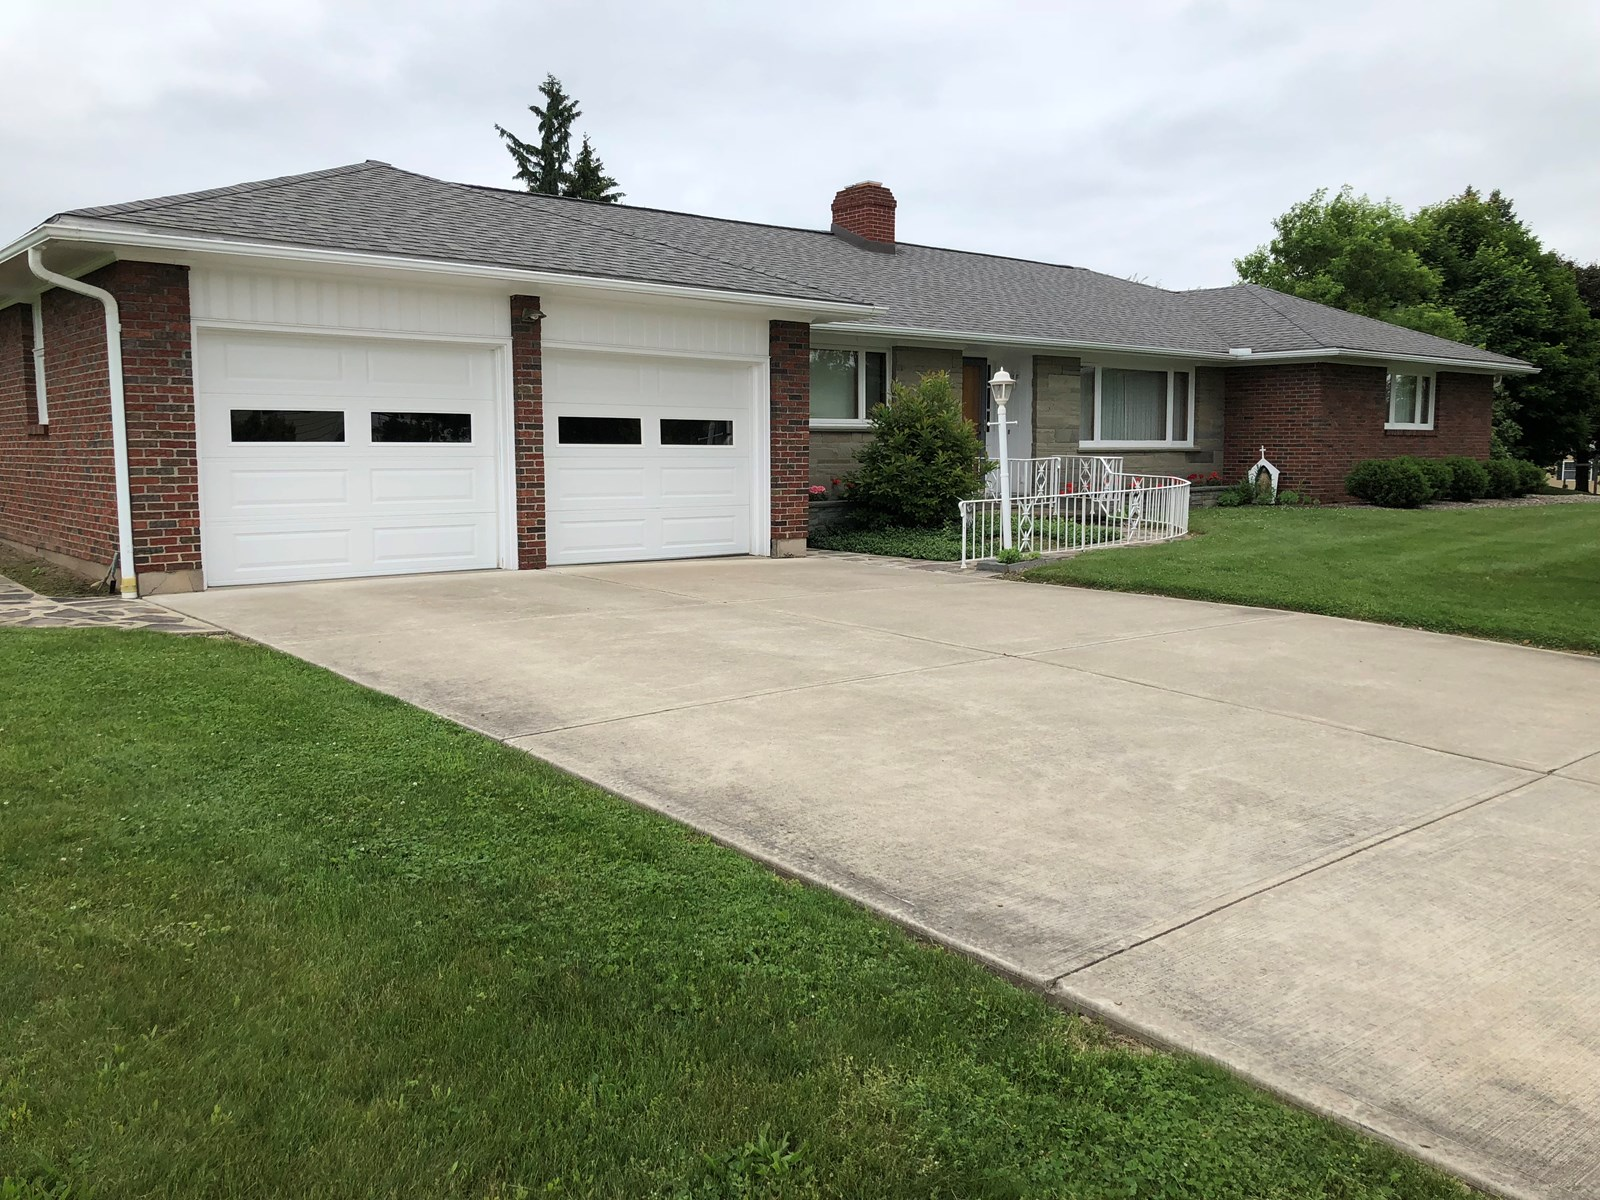 BEAUTIFUL BRICK RANCH IN TOWN, VILLAGE OF WAVERLY, TIOGA CTY